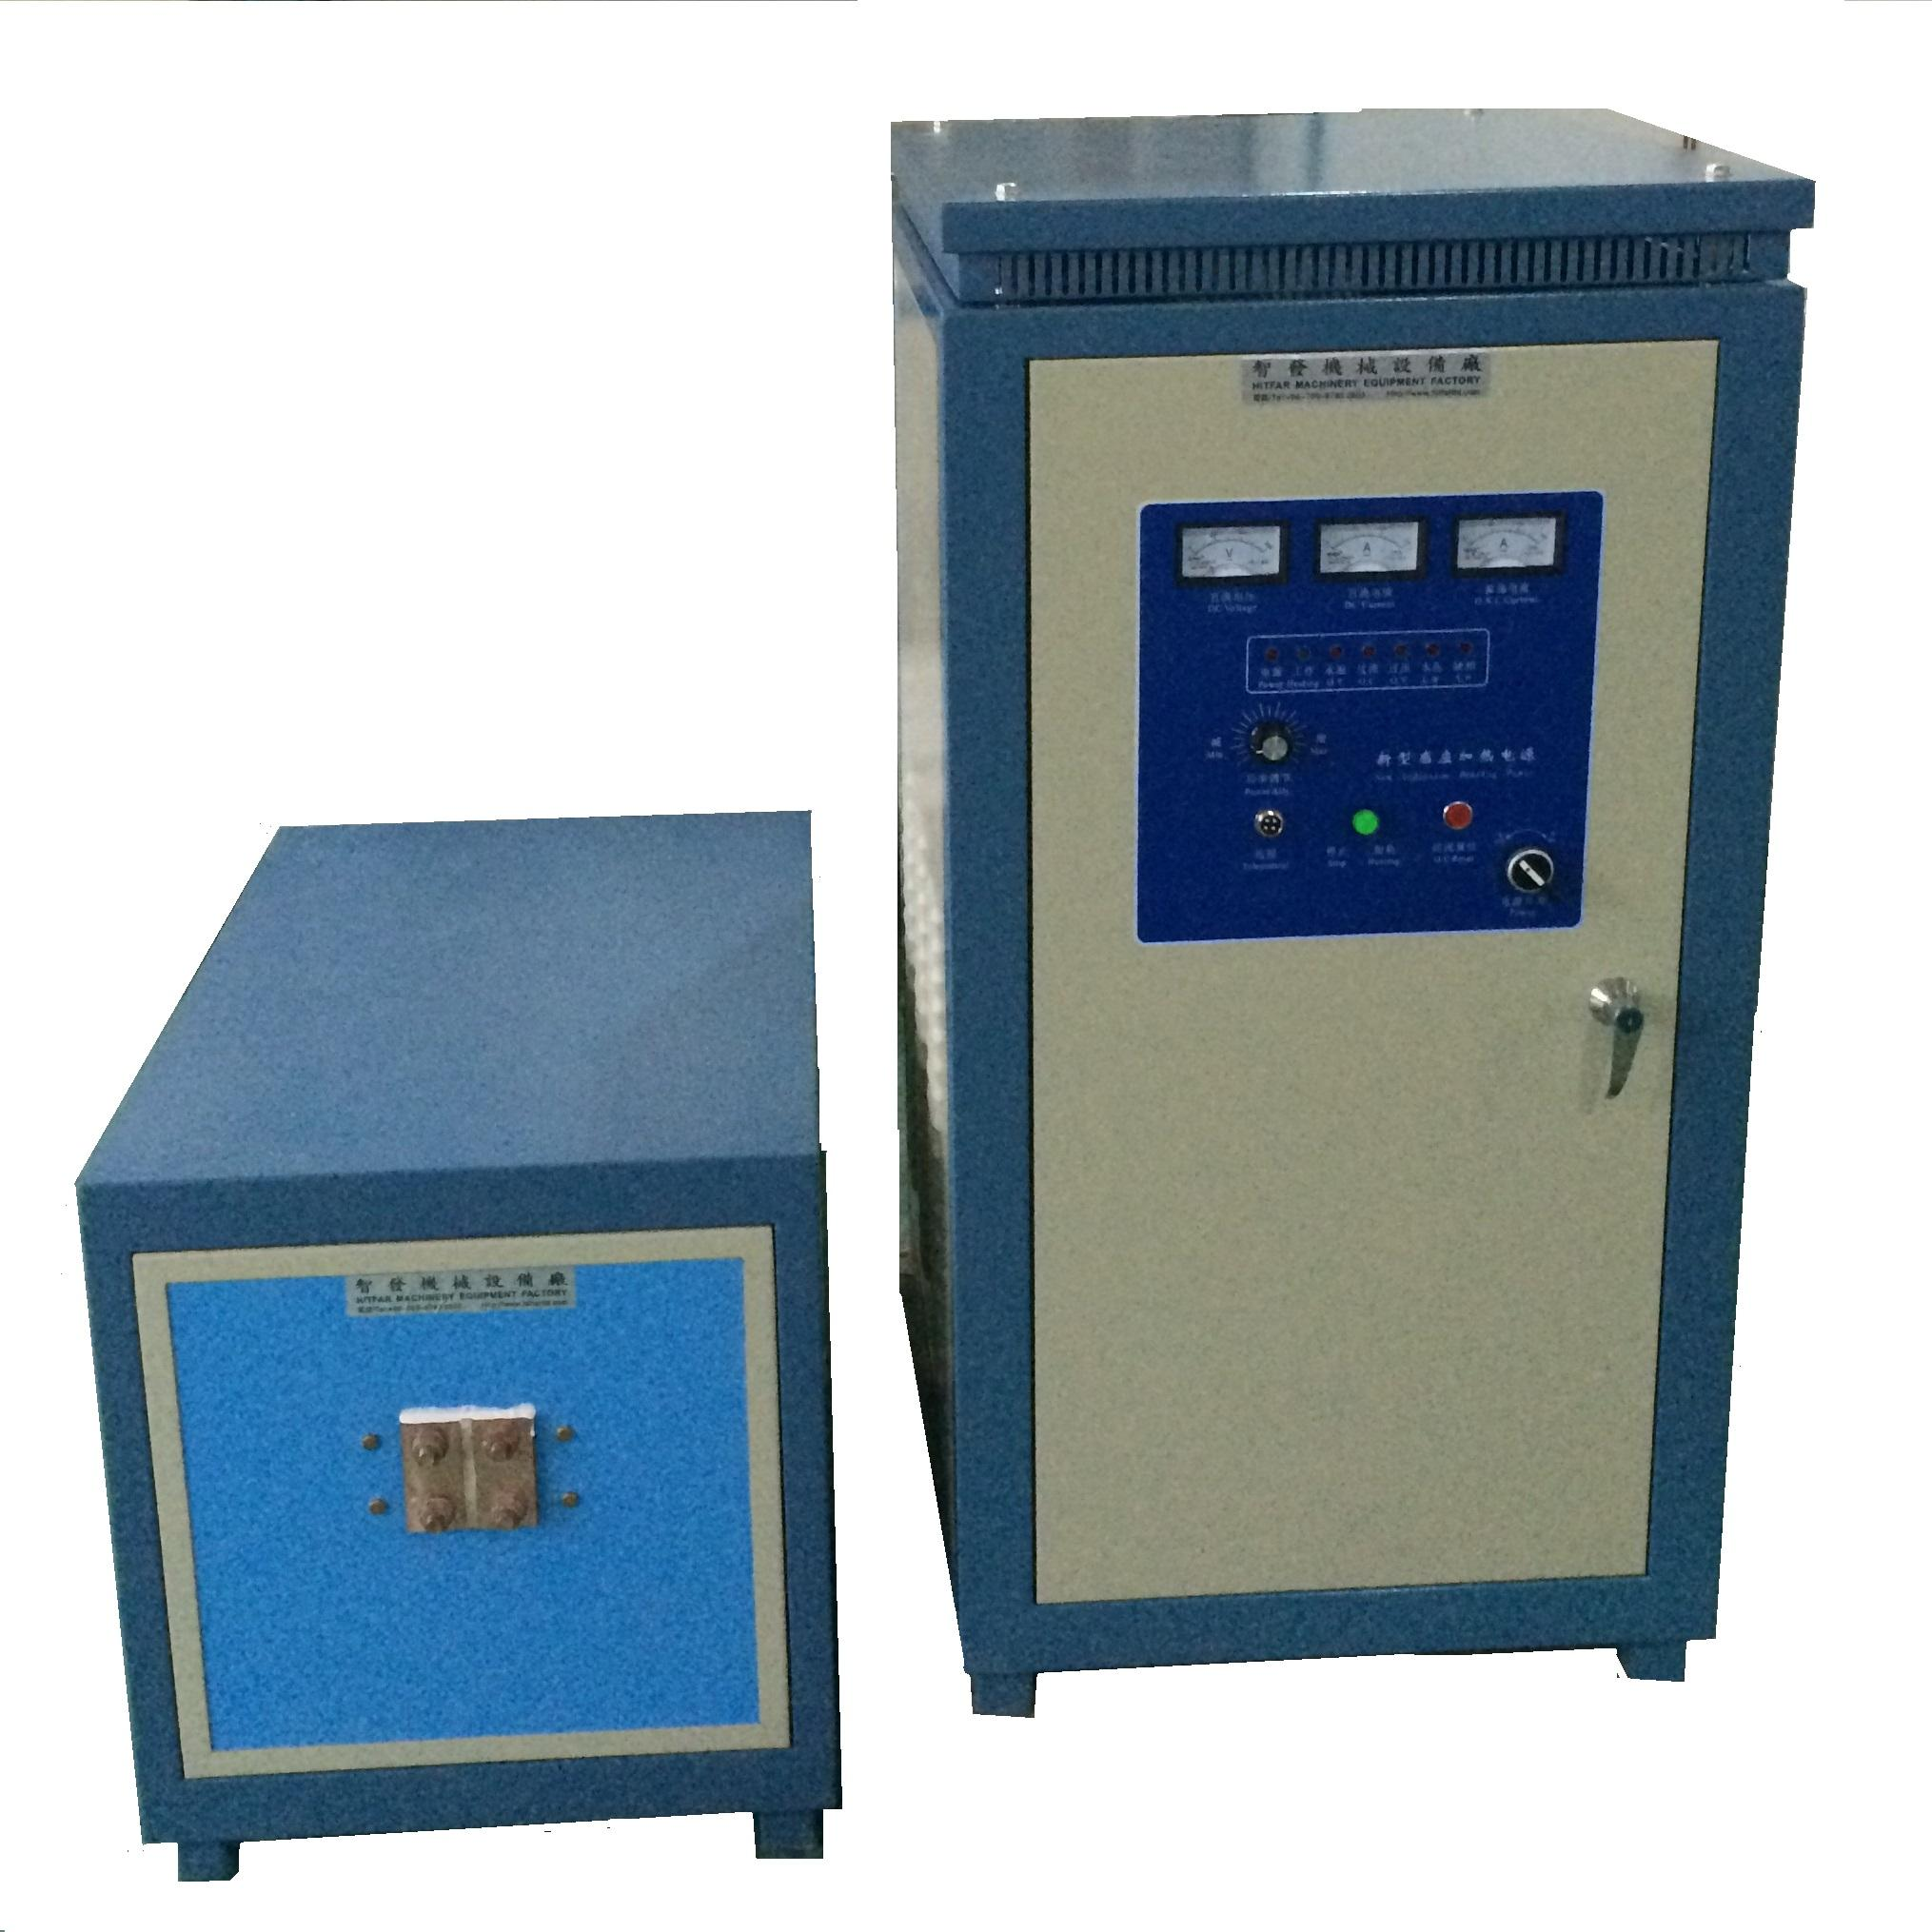 ZG-SF120 120KW High Frequency Induction Hardening Furnace for hardening gears/bearings